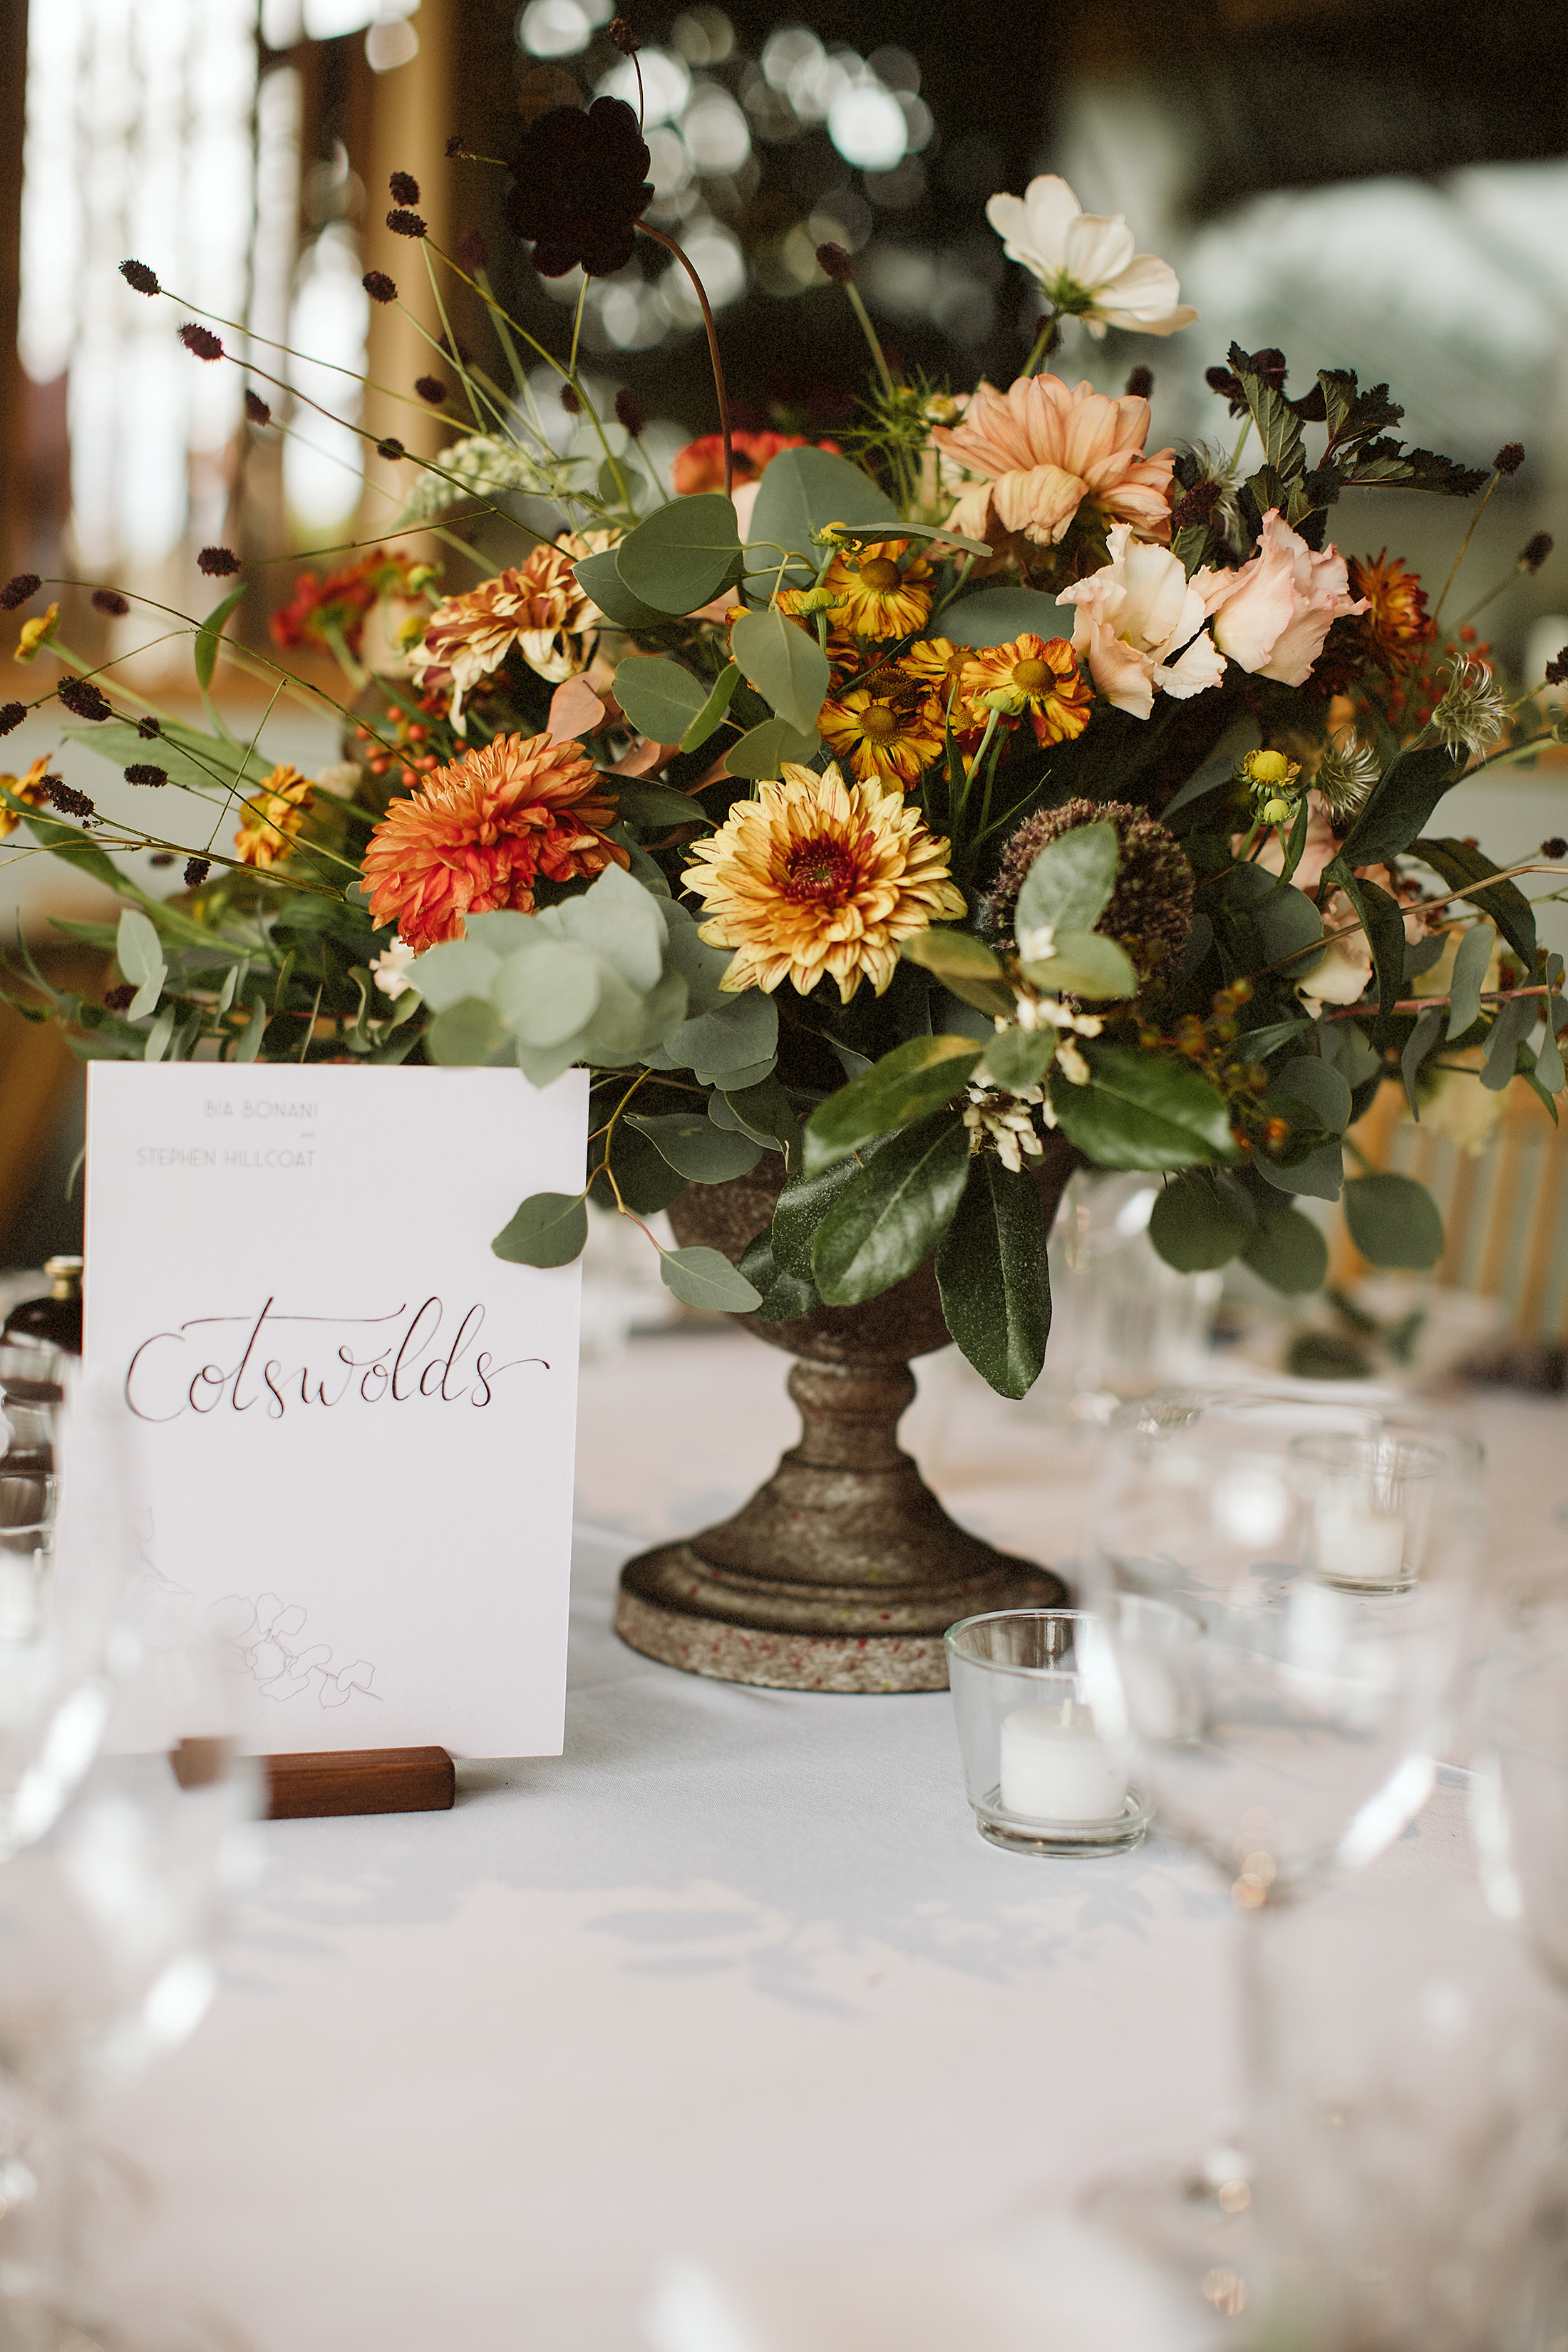 Nicebunch flowers sula stonebarnwedding costwolds ethical british luxury bouquet albumweddings autumn